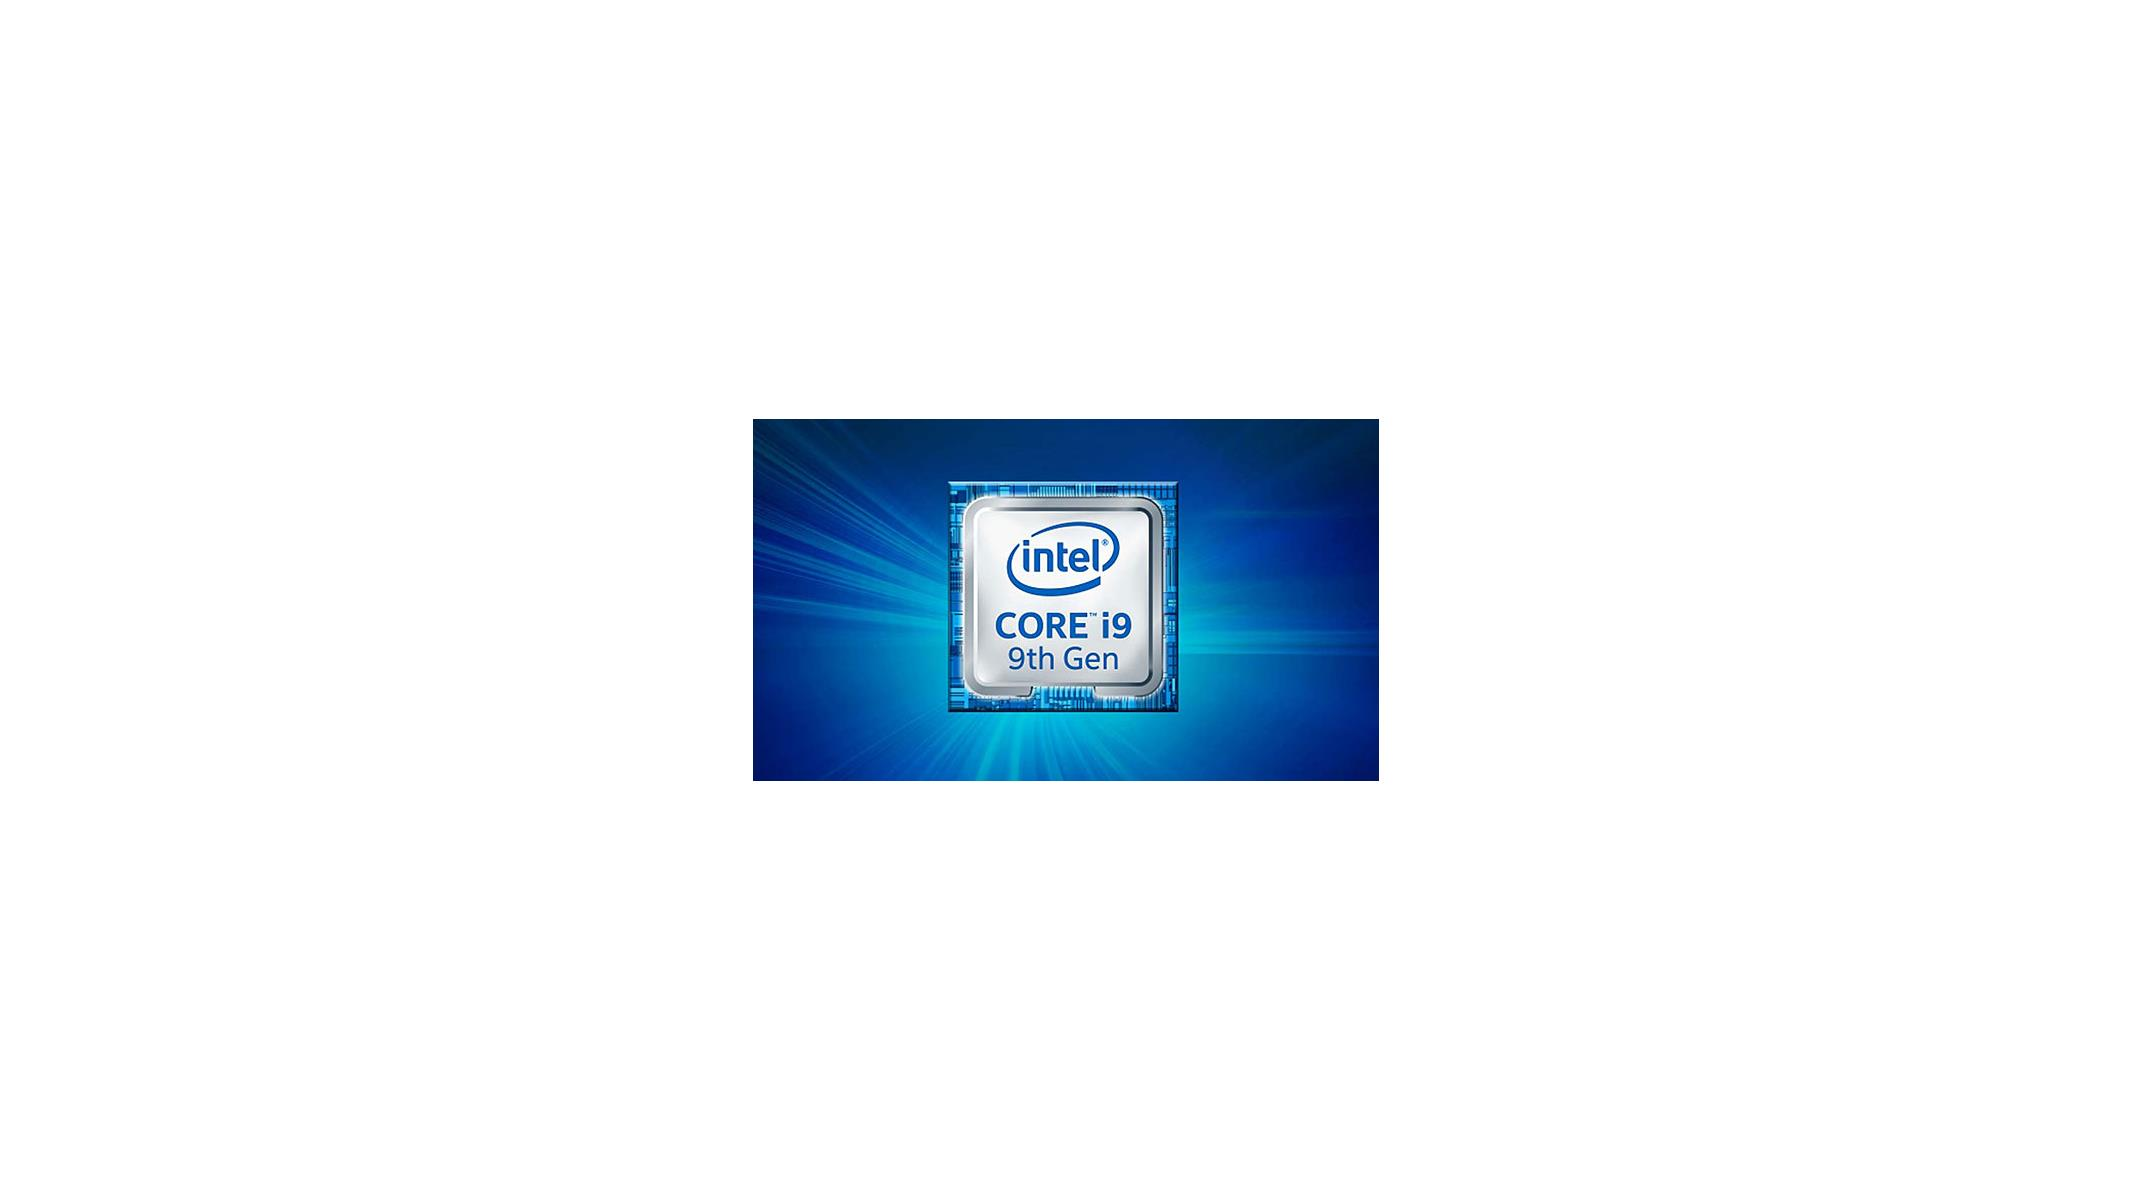 Intel Slips 9th Gen Laptop CPU Details With An 8-Core 5GHz Core i9